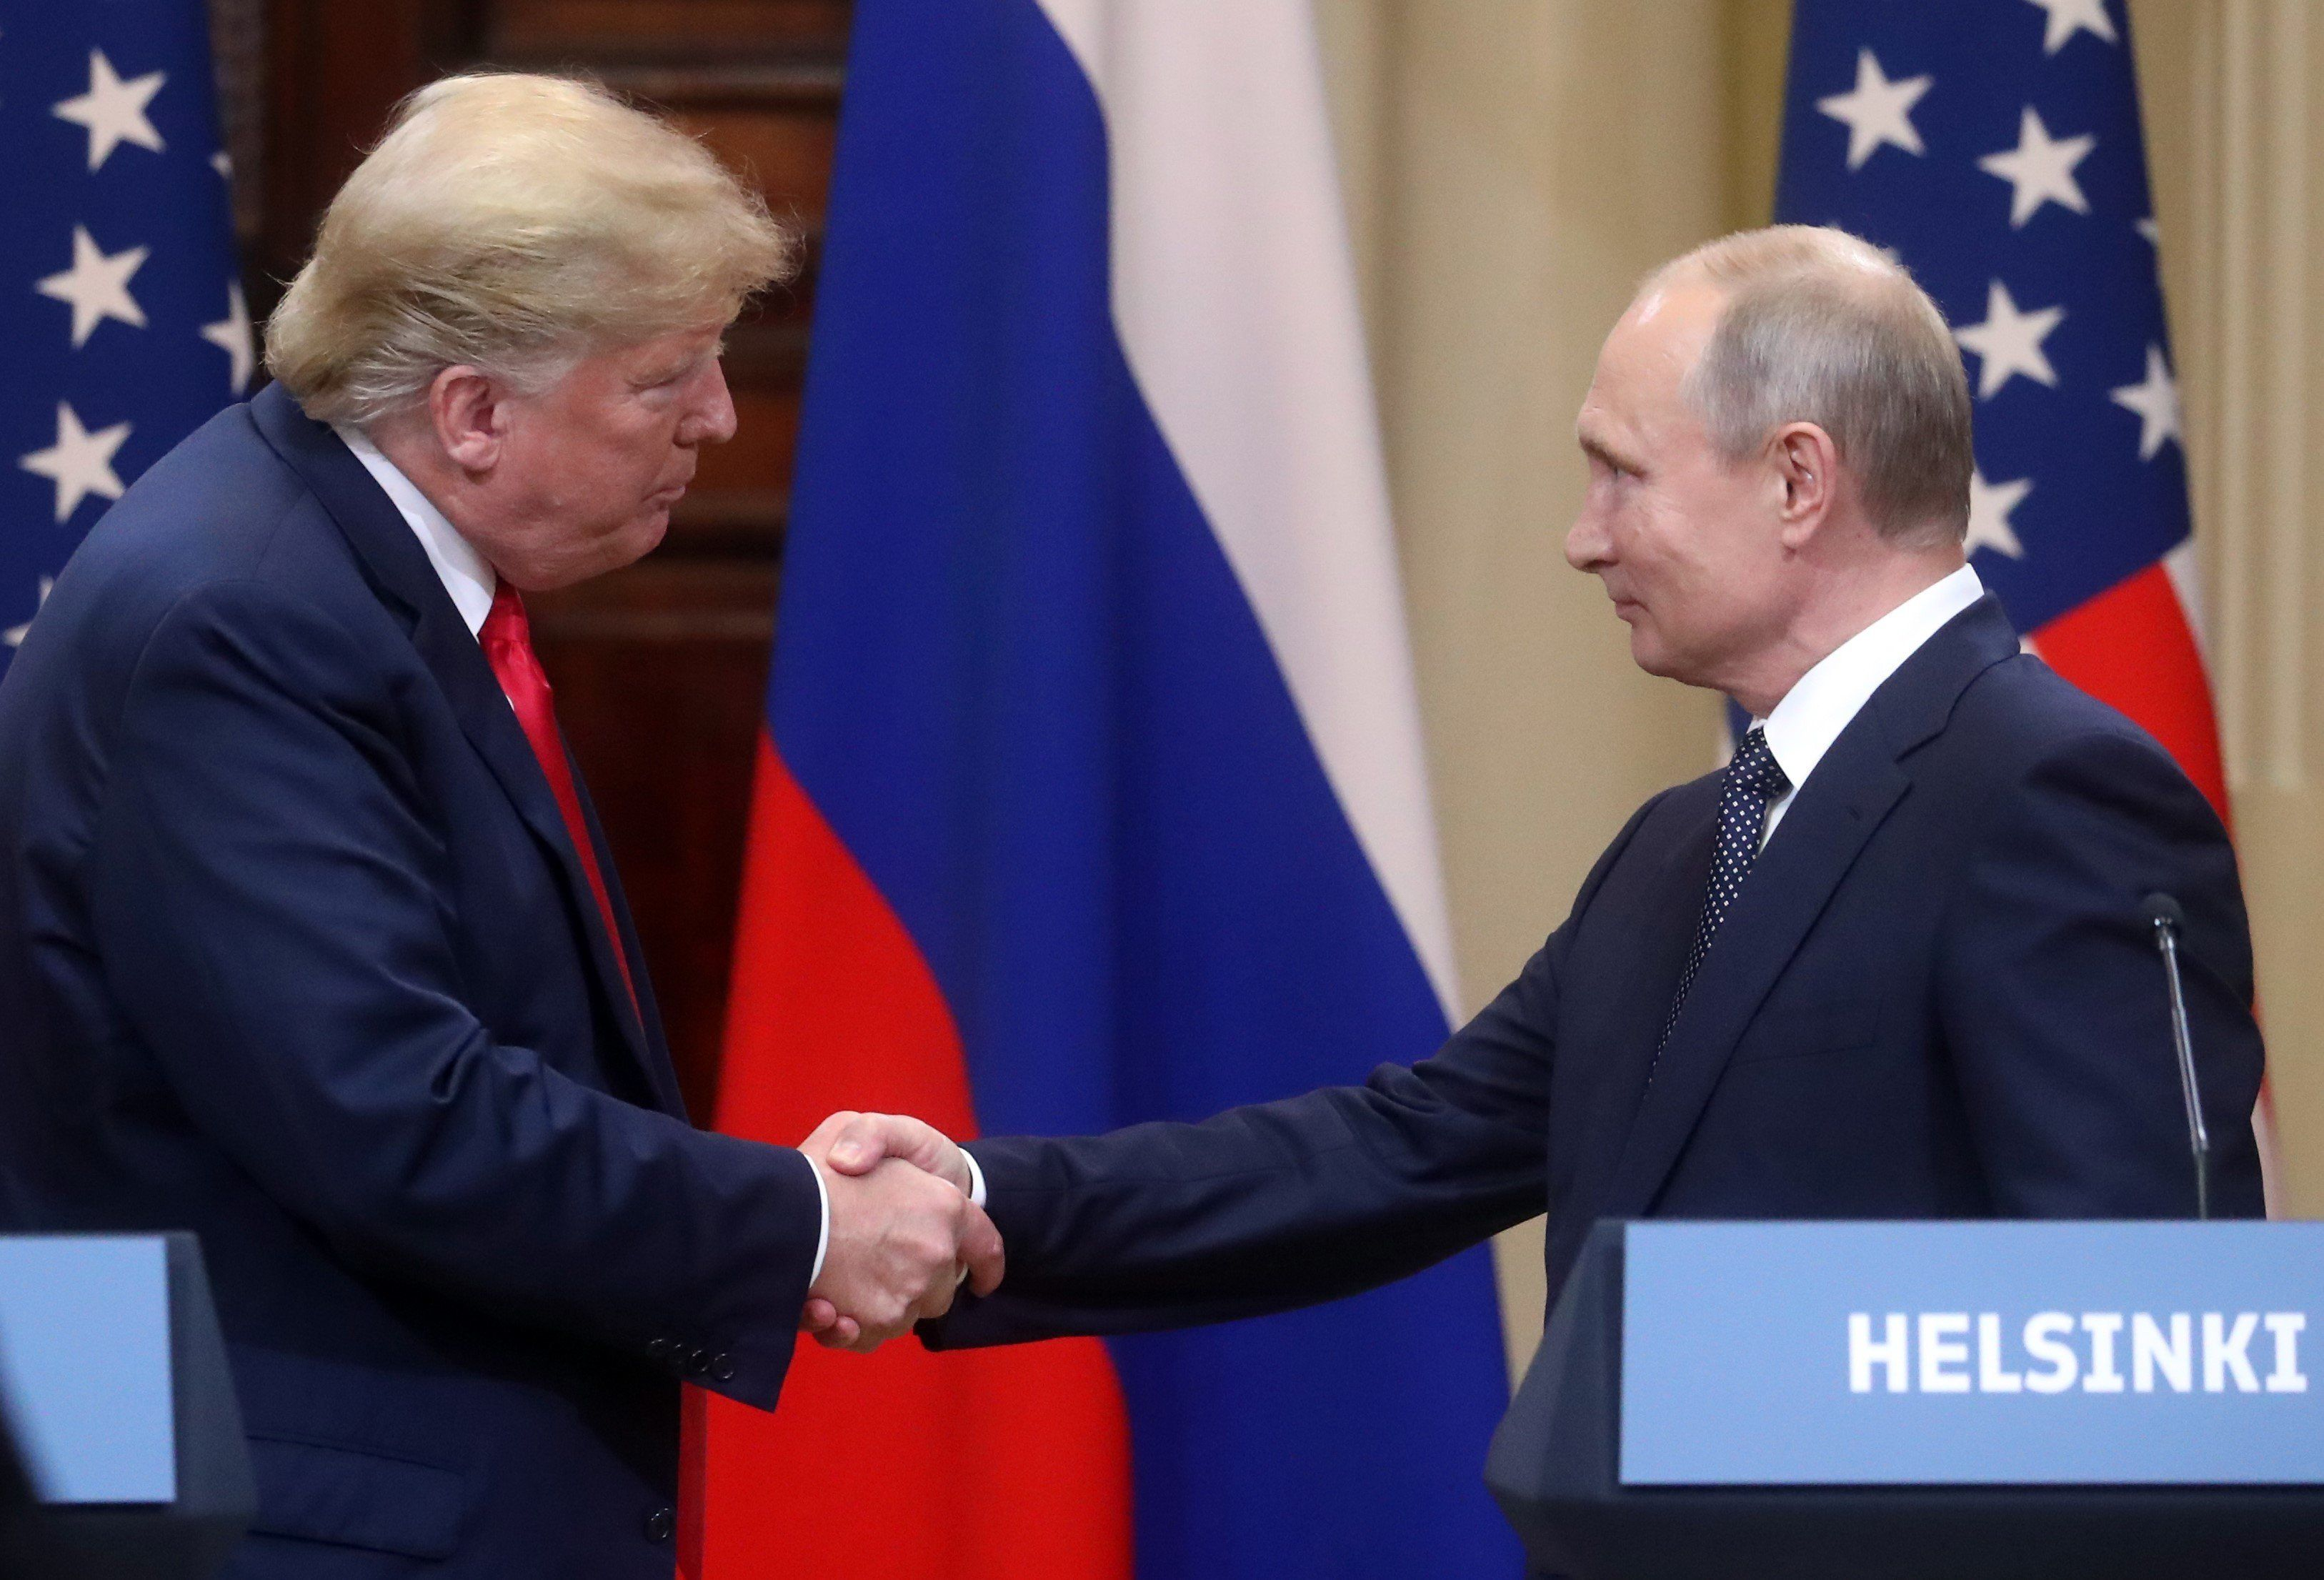 HELSINKI, FINLAND - JULY 16: U.S. President Donald Trump (L) and Russia's President Vladimir Putin (R) hold a joint press conference after their bilateral meeting in Helsinki, Finland on July 16, 2018.  (Photo by Stringer/Anadolu Agency/Getty Images)